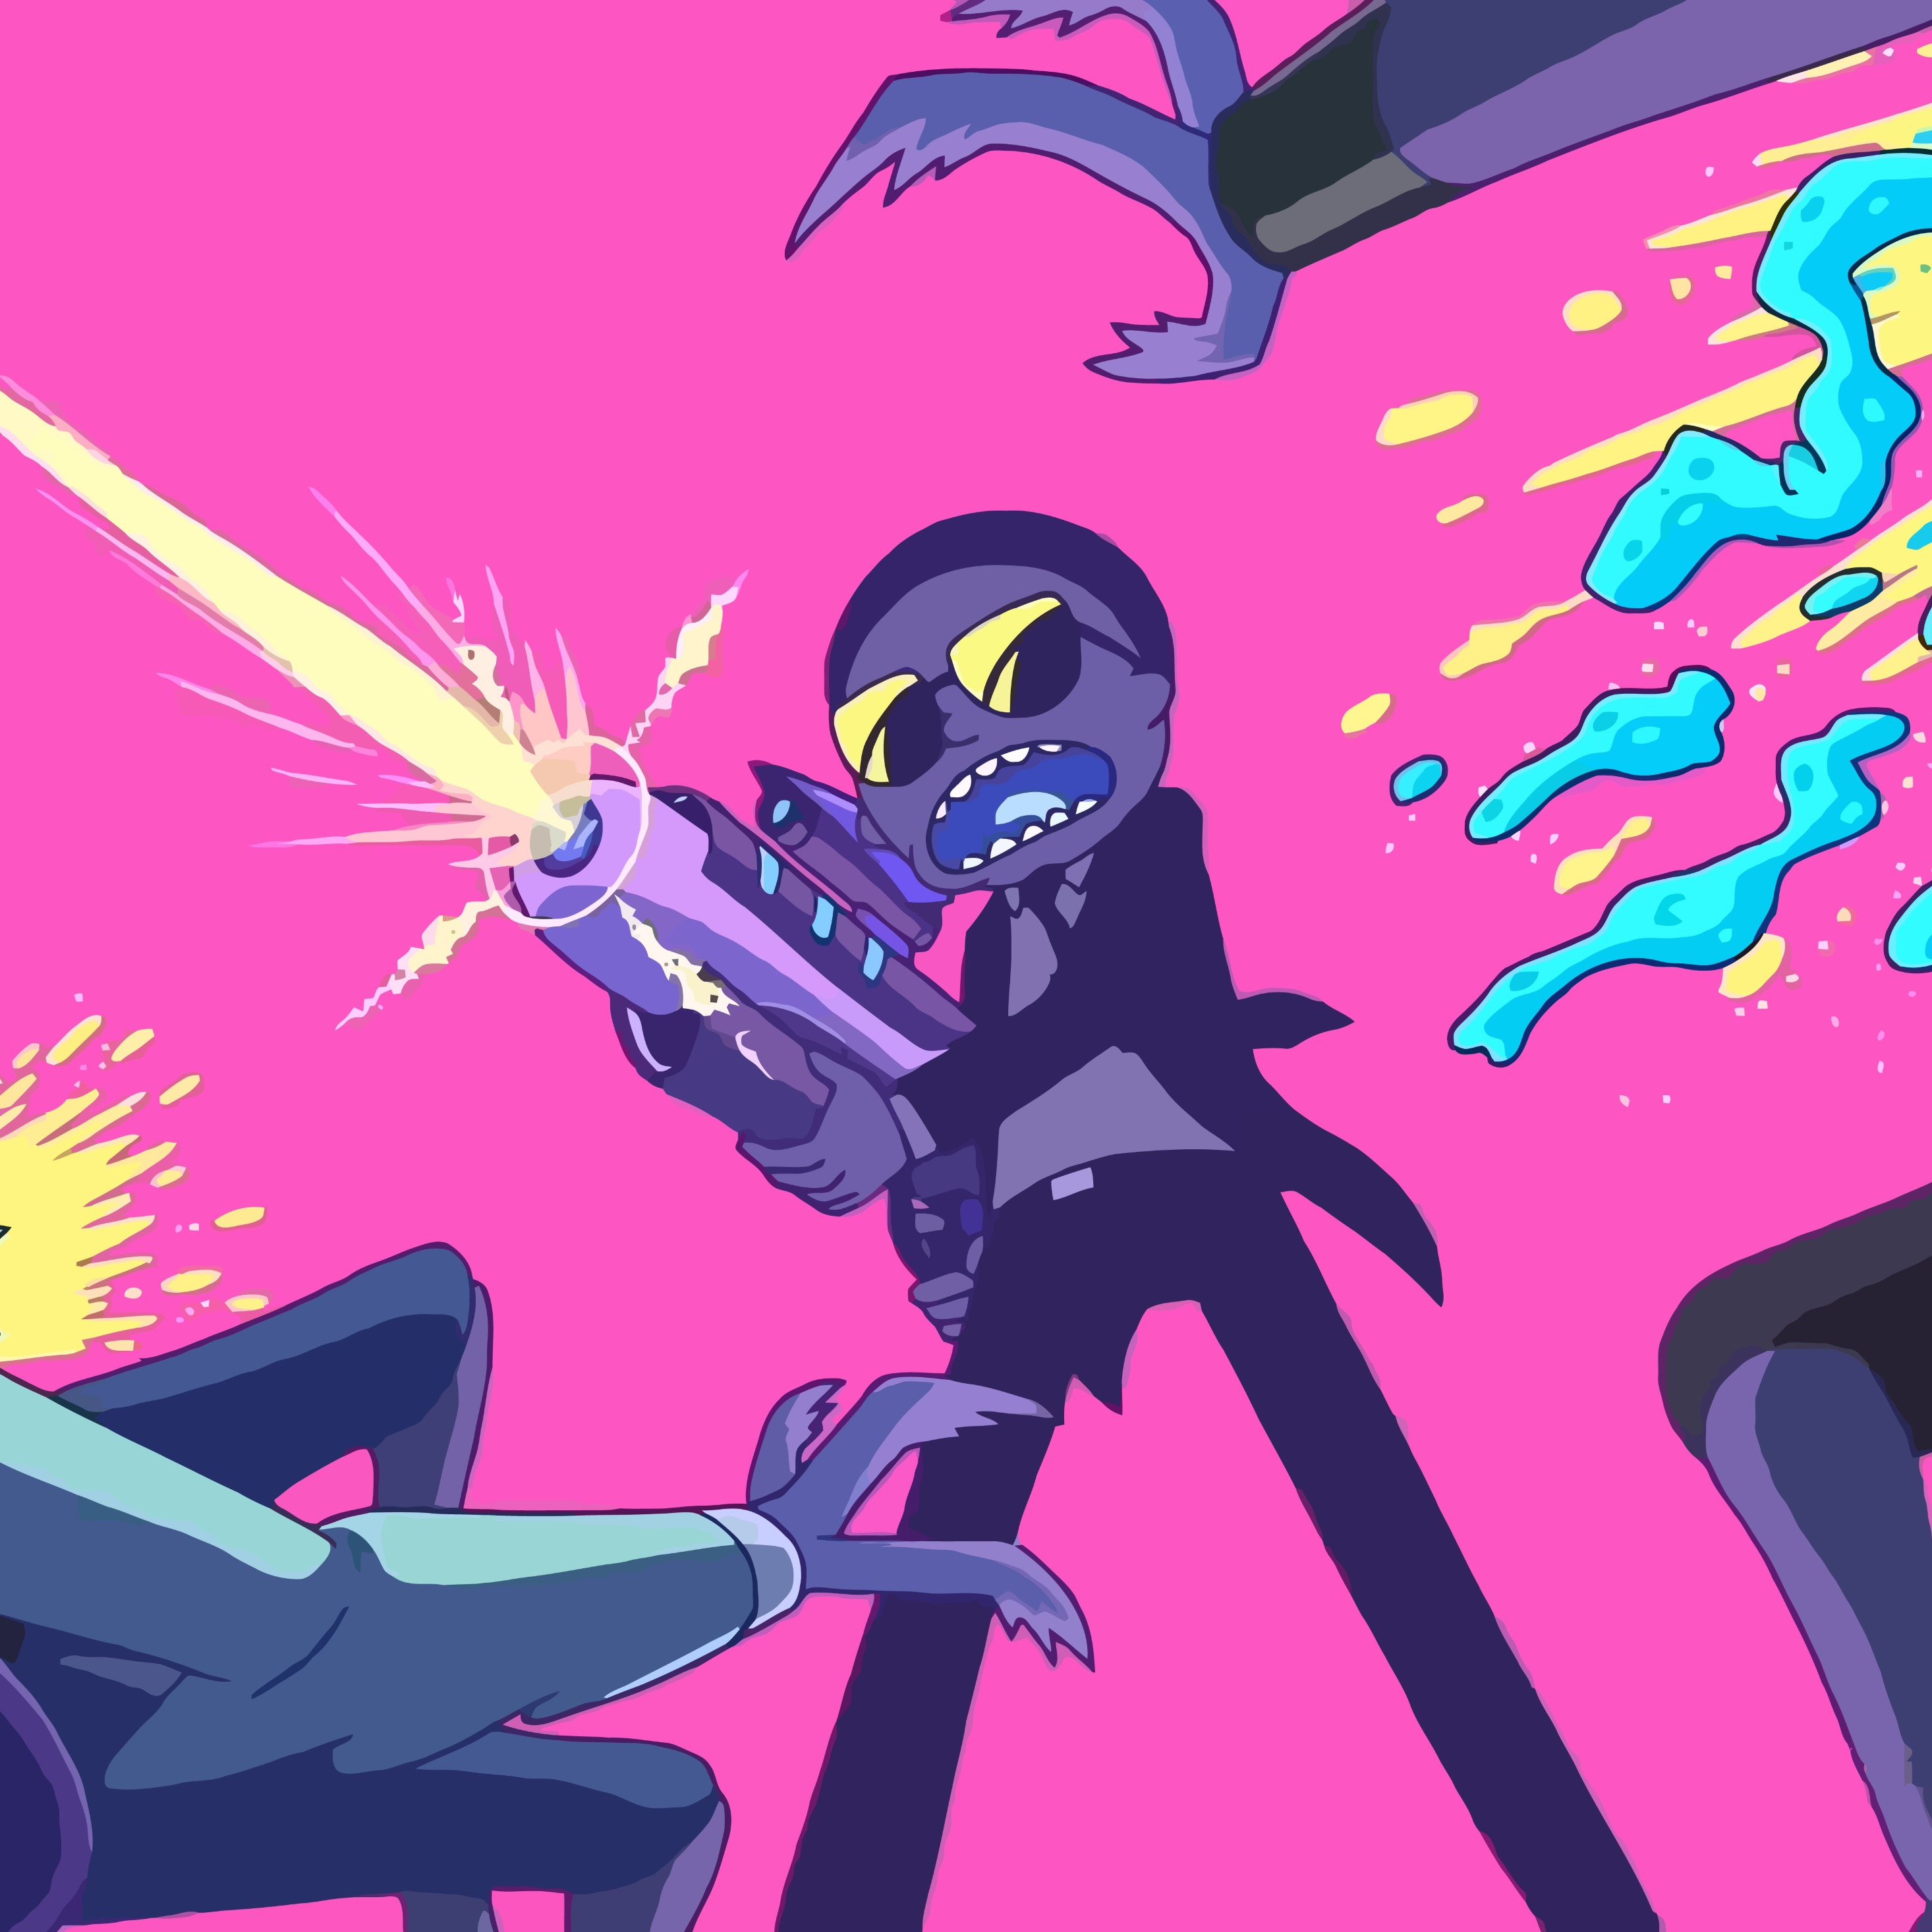 Download rick and morty fighting with aliens 3840x2400 resolution hd 8k wallpaper - Rick and morty download ...